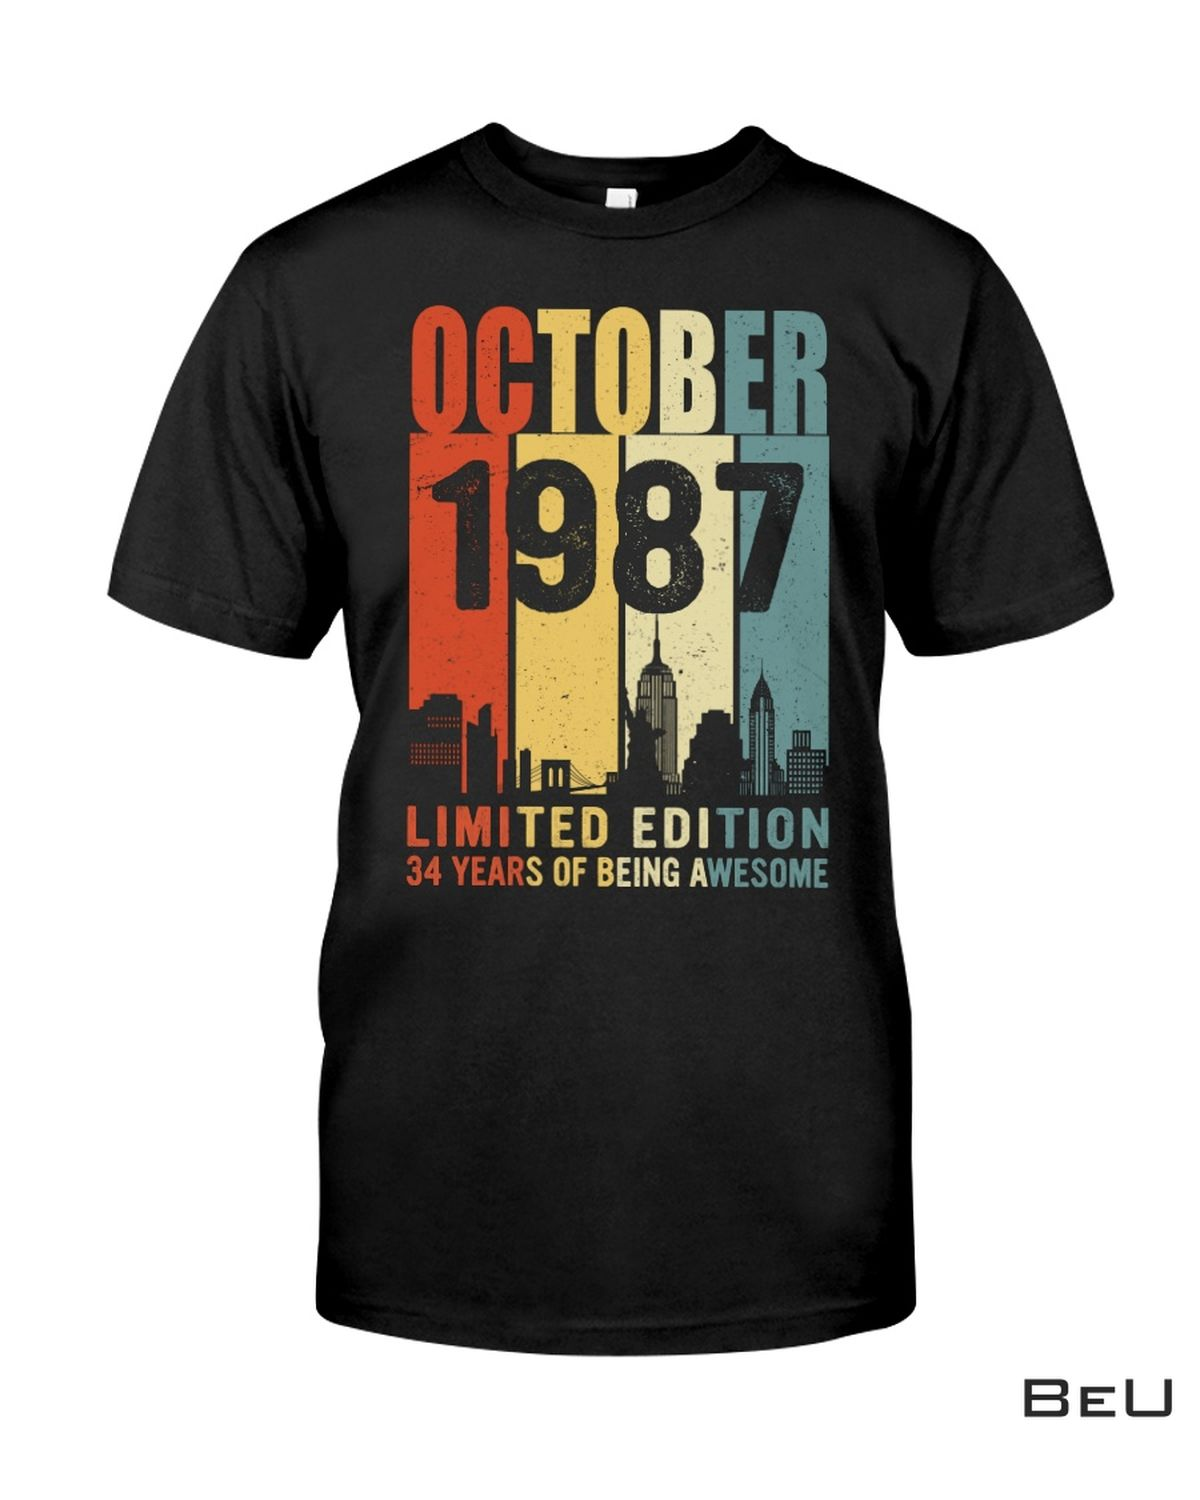 October 1987 Limited Edition Shirt, hoodie